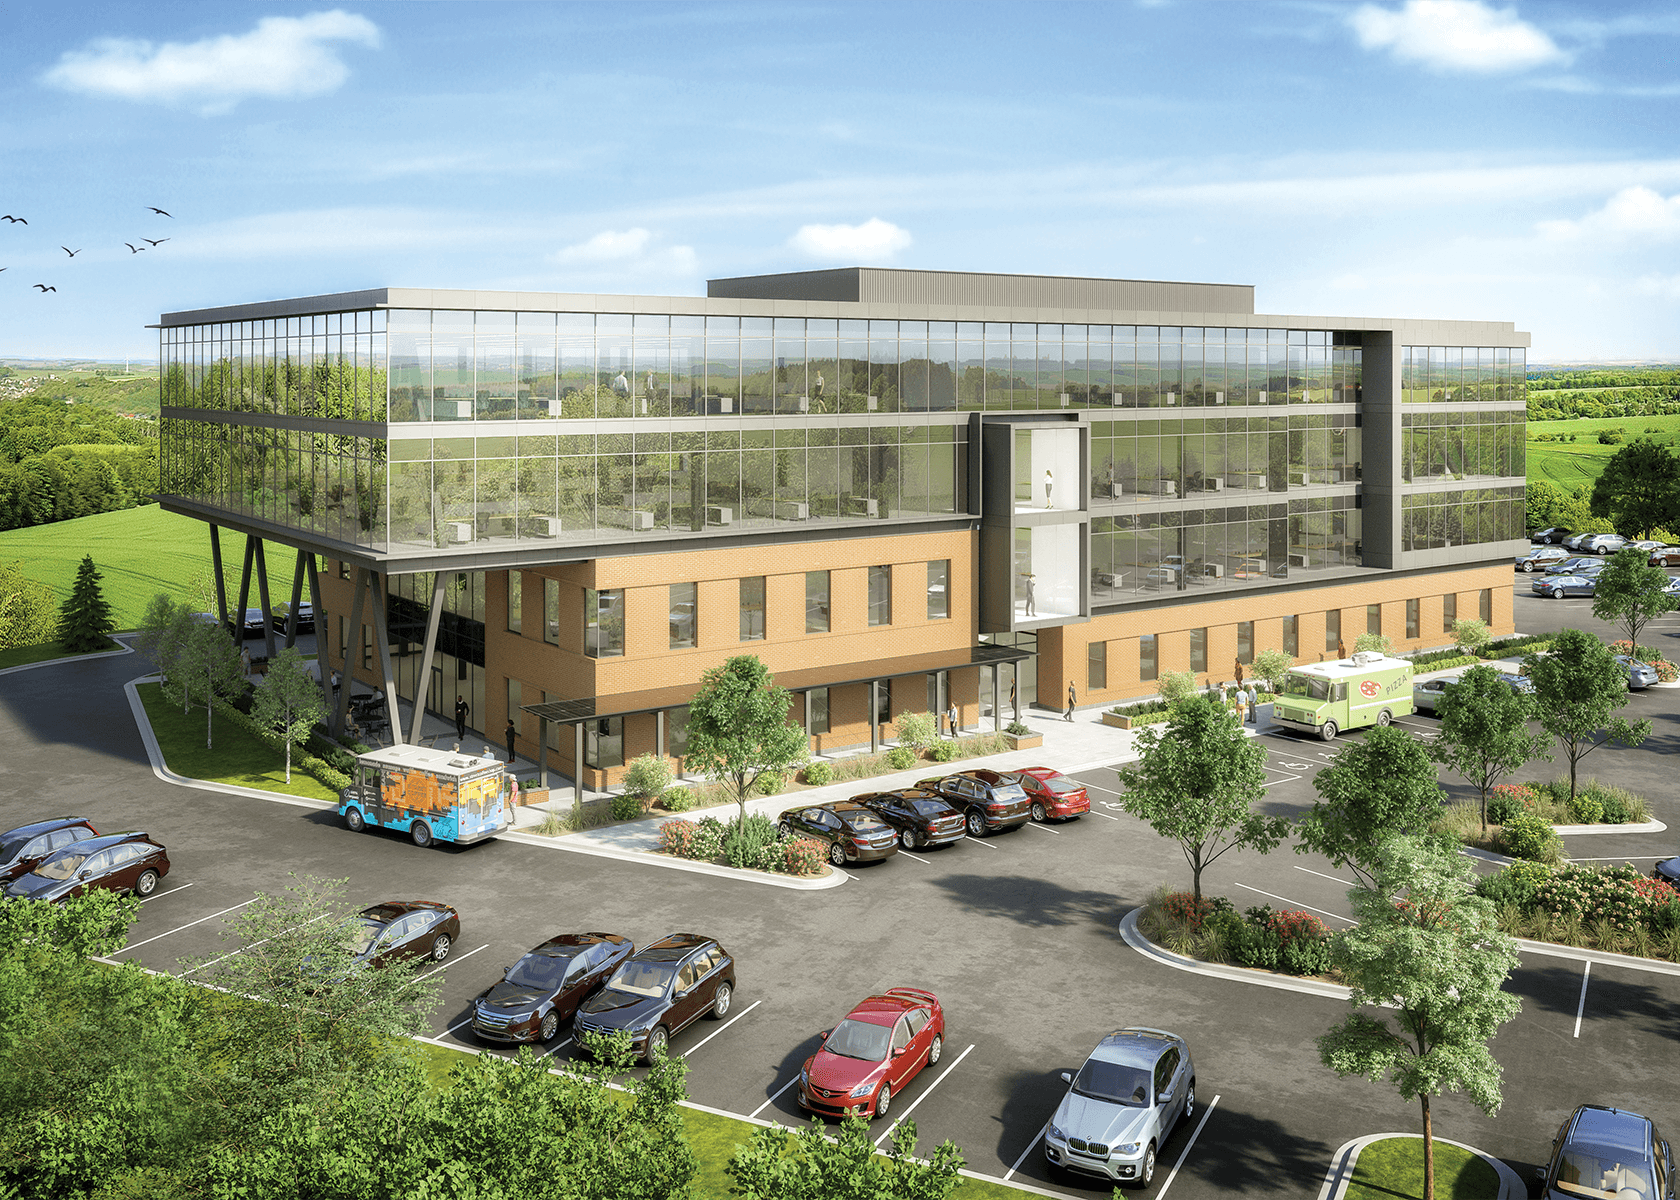 Digital rendering of the exterior of Beacon 2- a 4-story office building with large windows